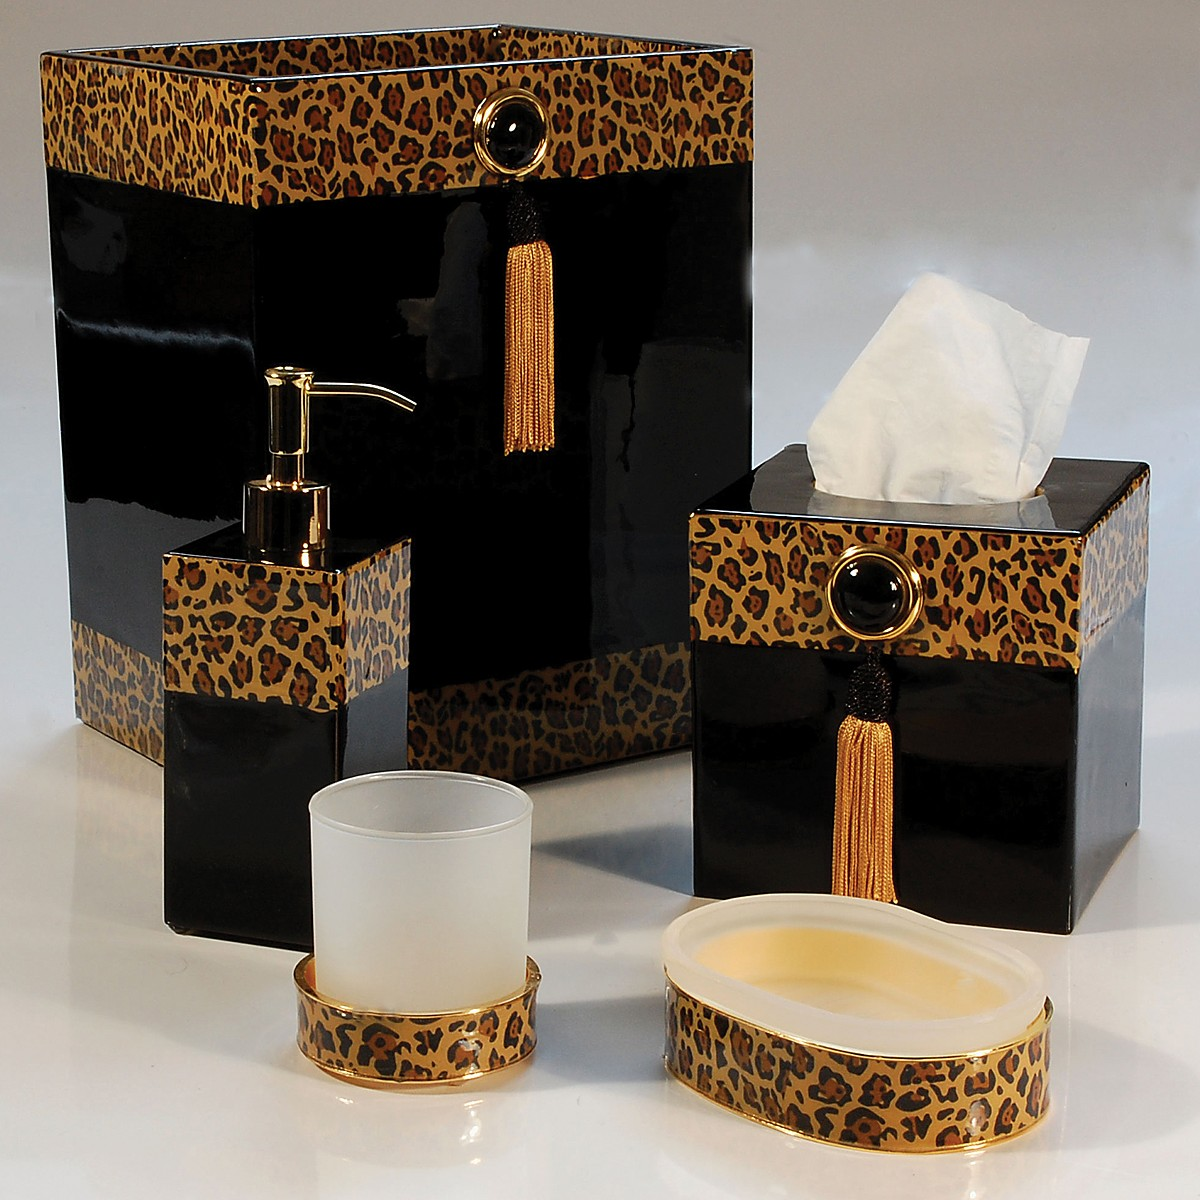 Home design ideas leopard bathroom decor for Bathroom decor